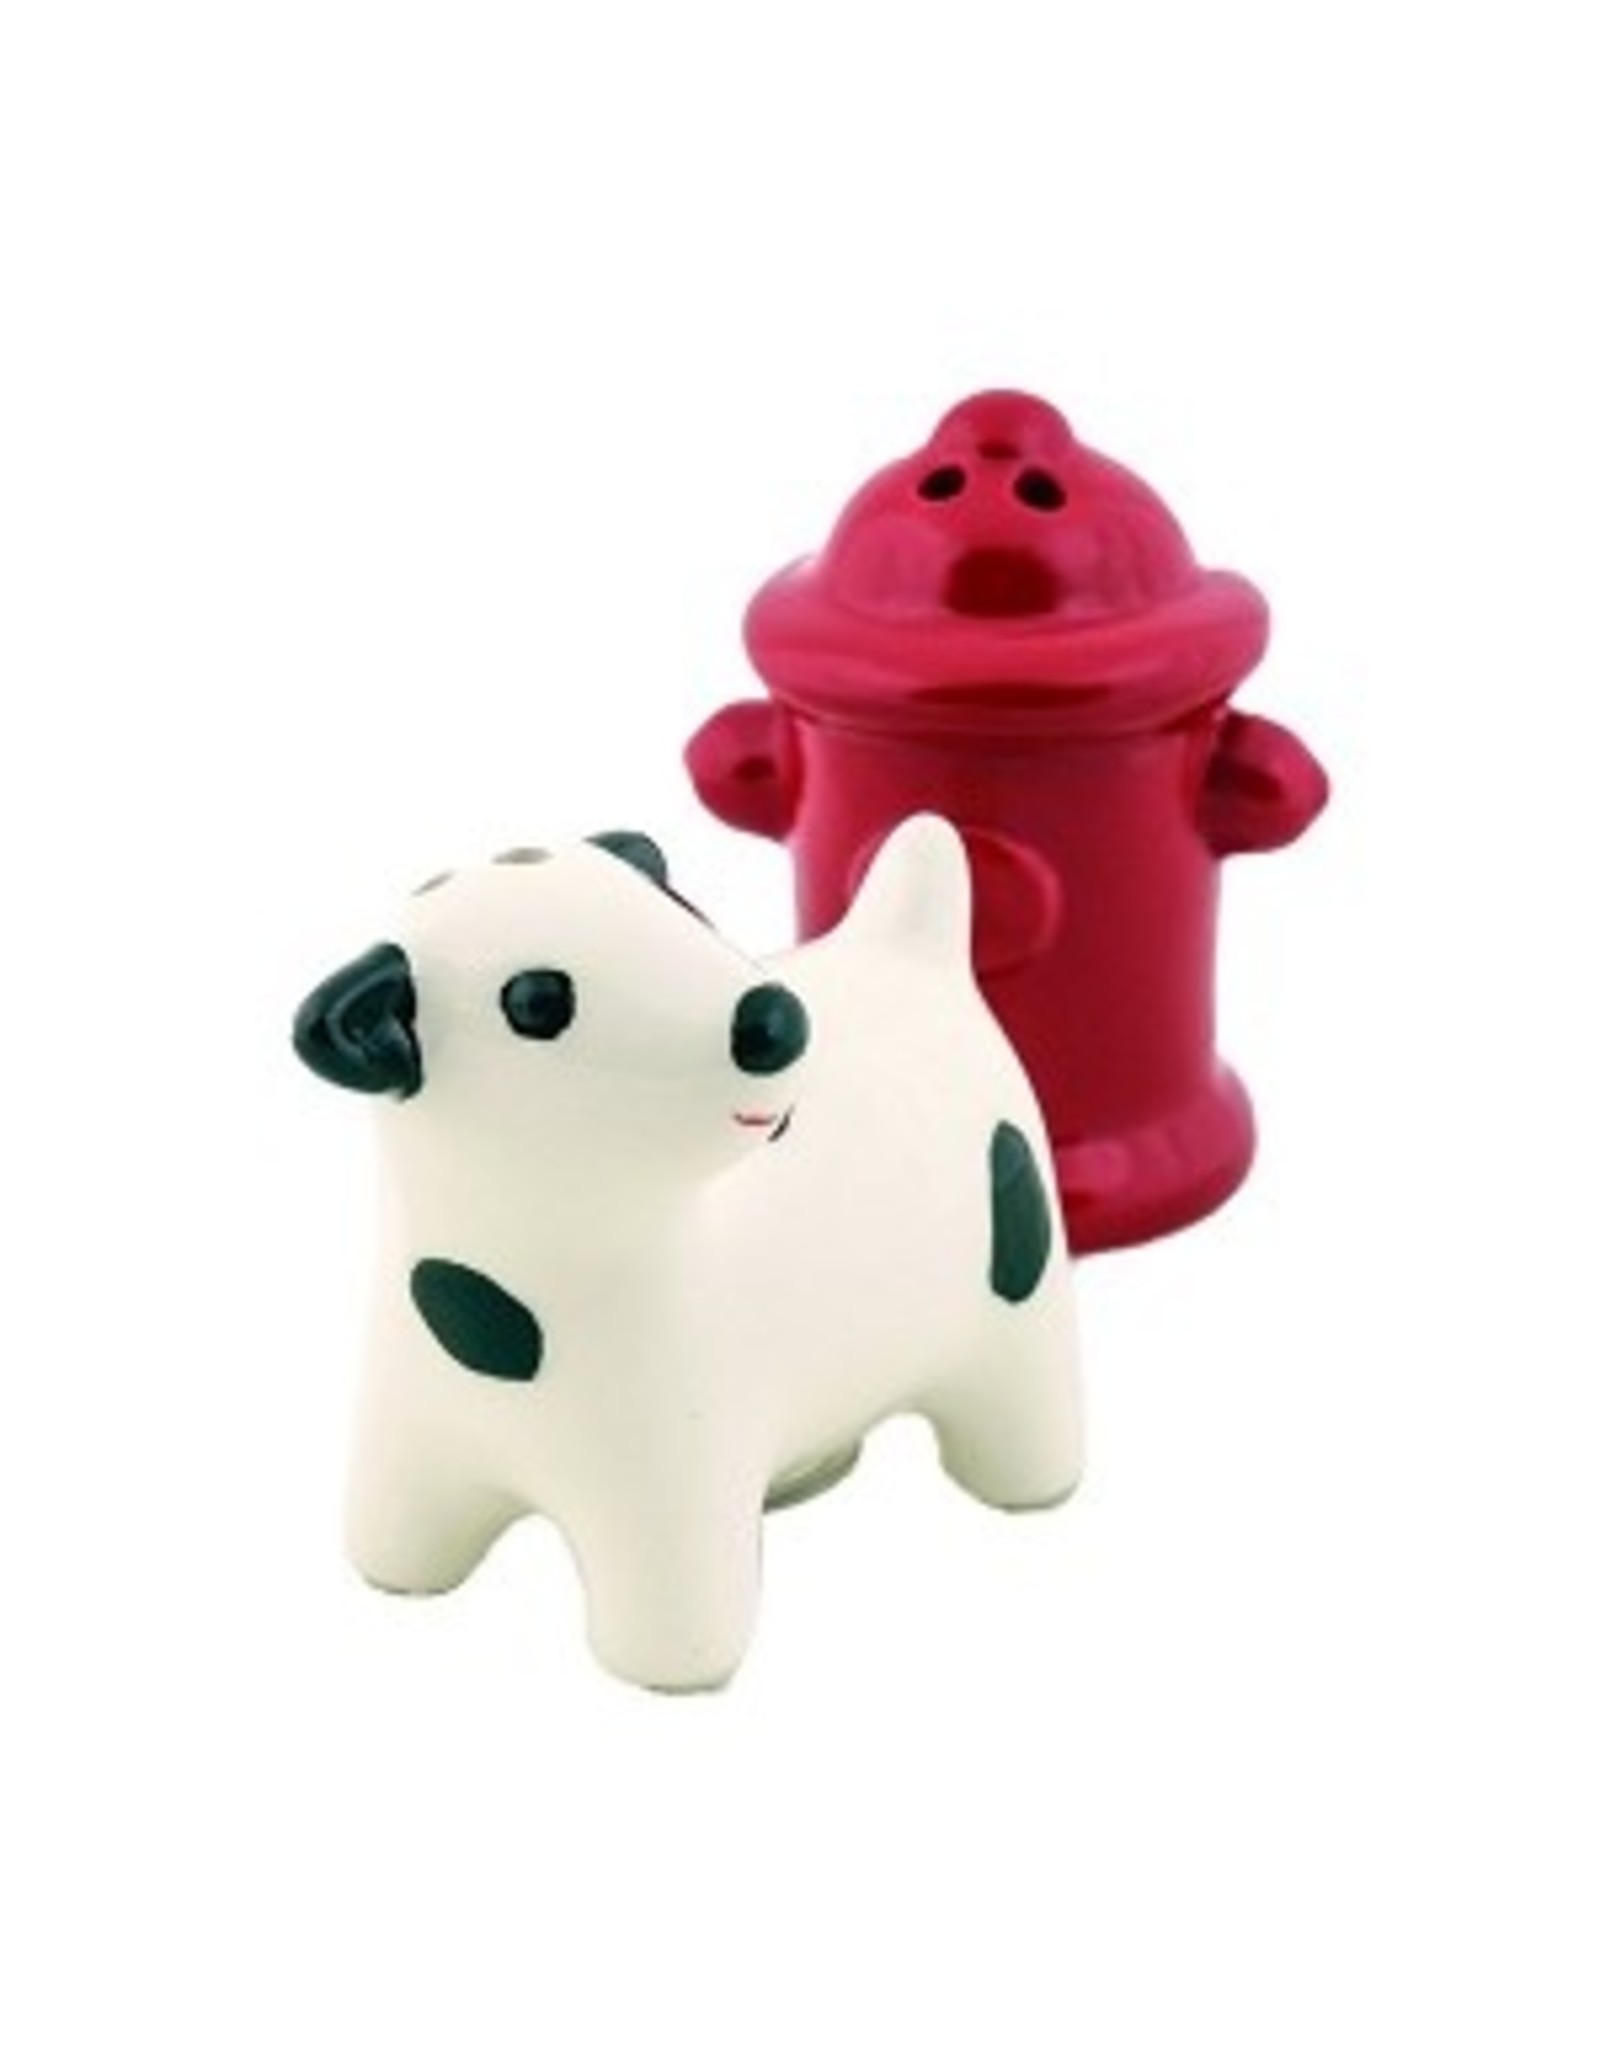 DII Dog and Hydrant Salt & Pepper Shakers